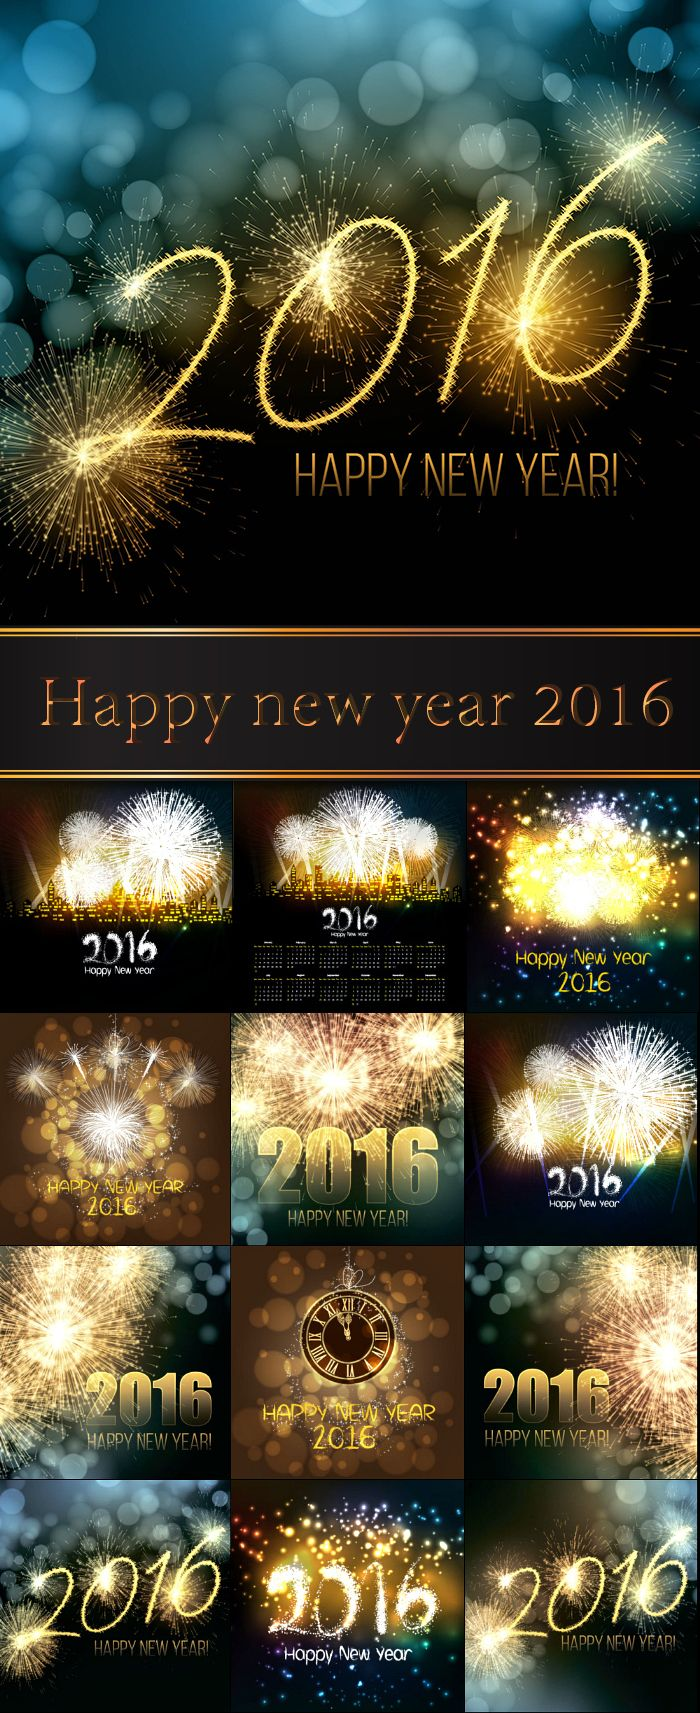 best 25+ happy new year 2016 ideas on pinterest | happy new year